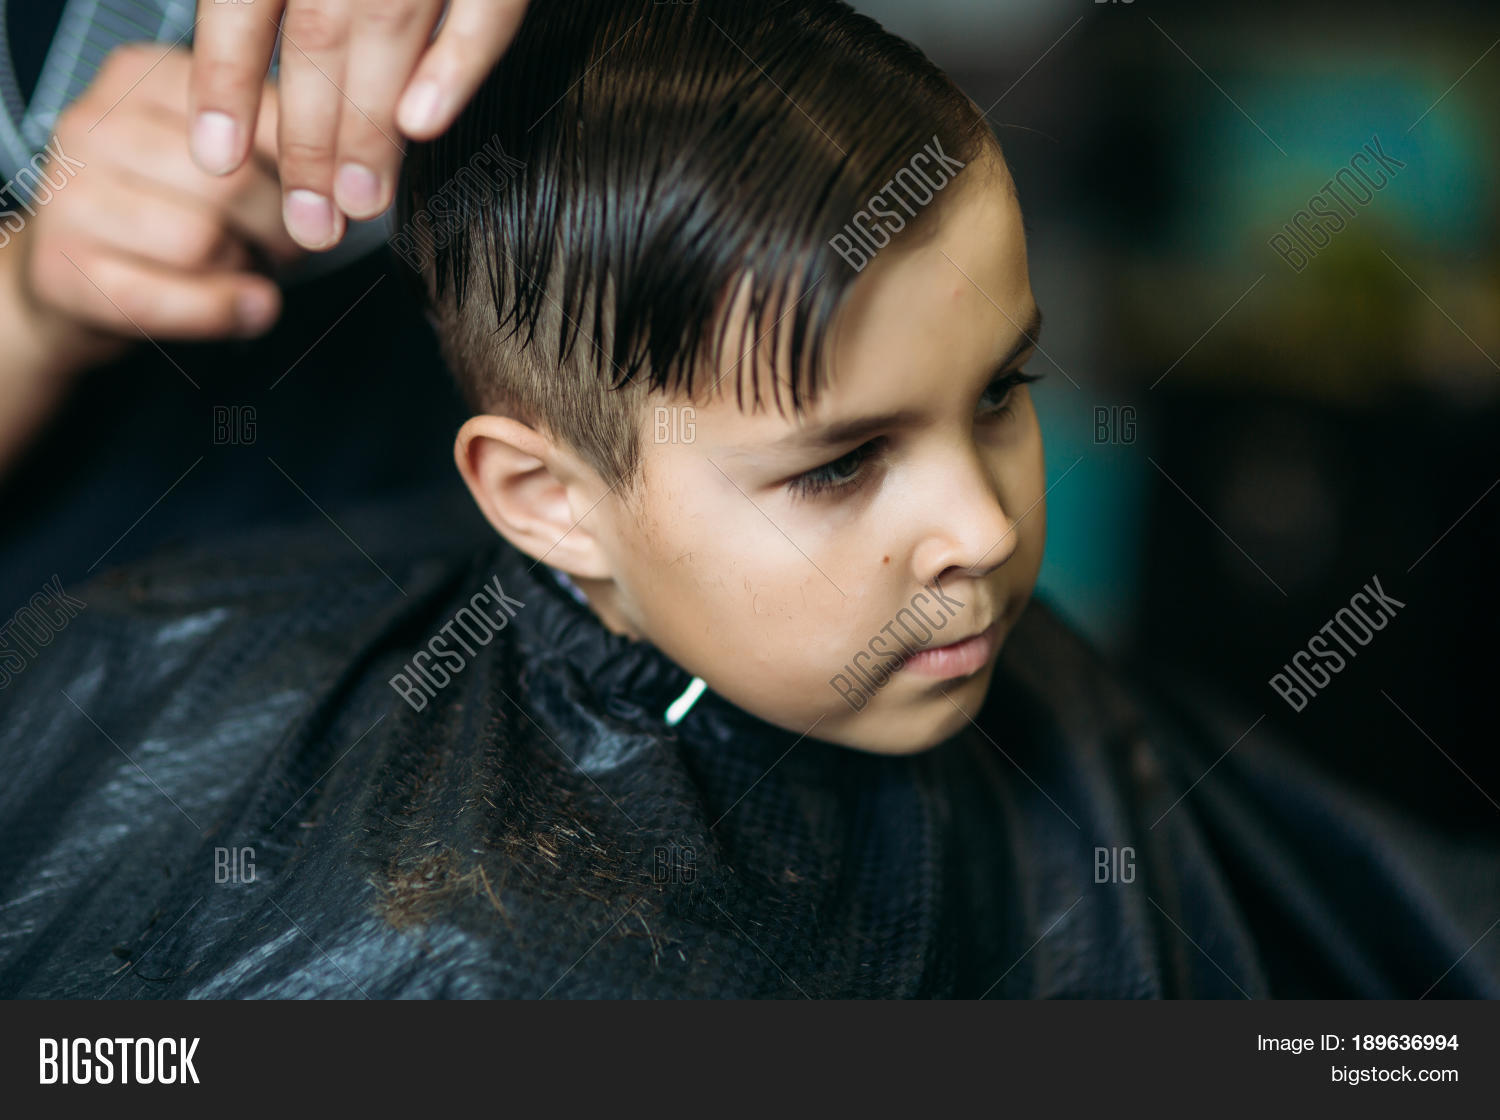 Little Boy Getting Haircut By Barber While Sitting In Chair At Barbershop On